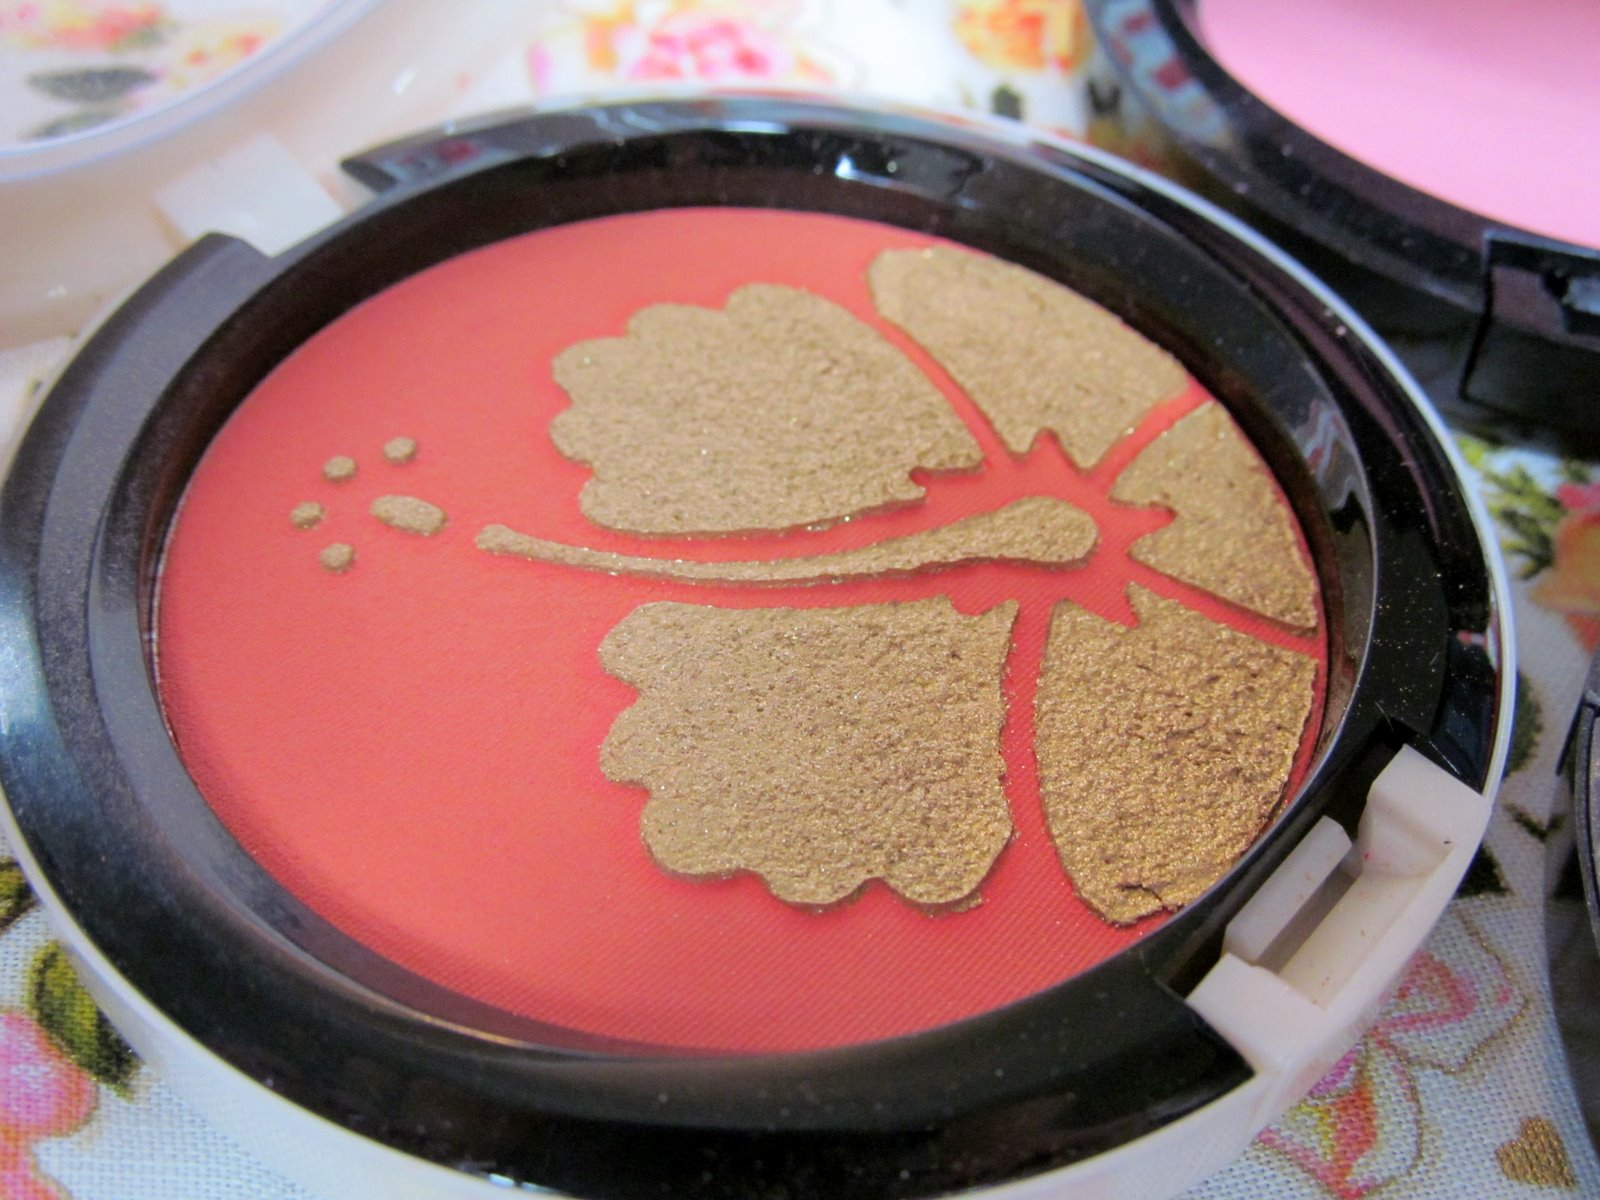 MAC My Paradise blush